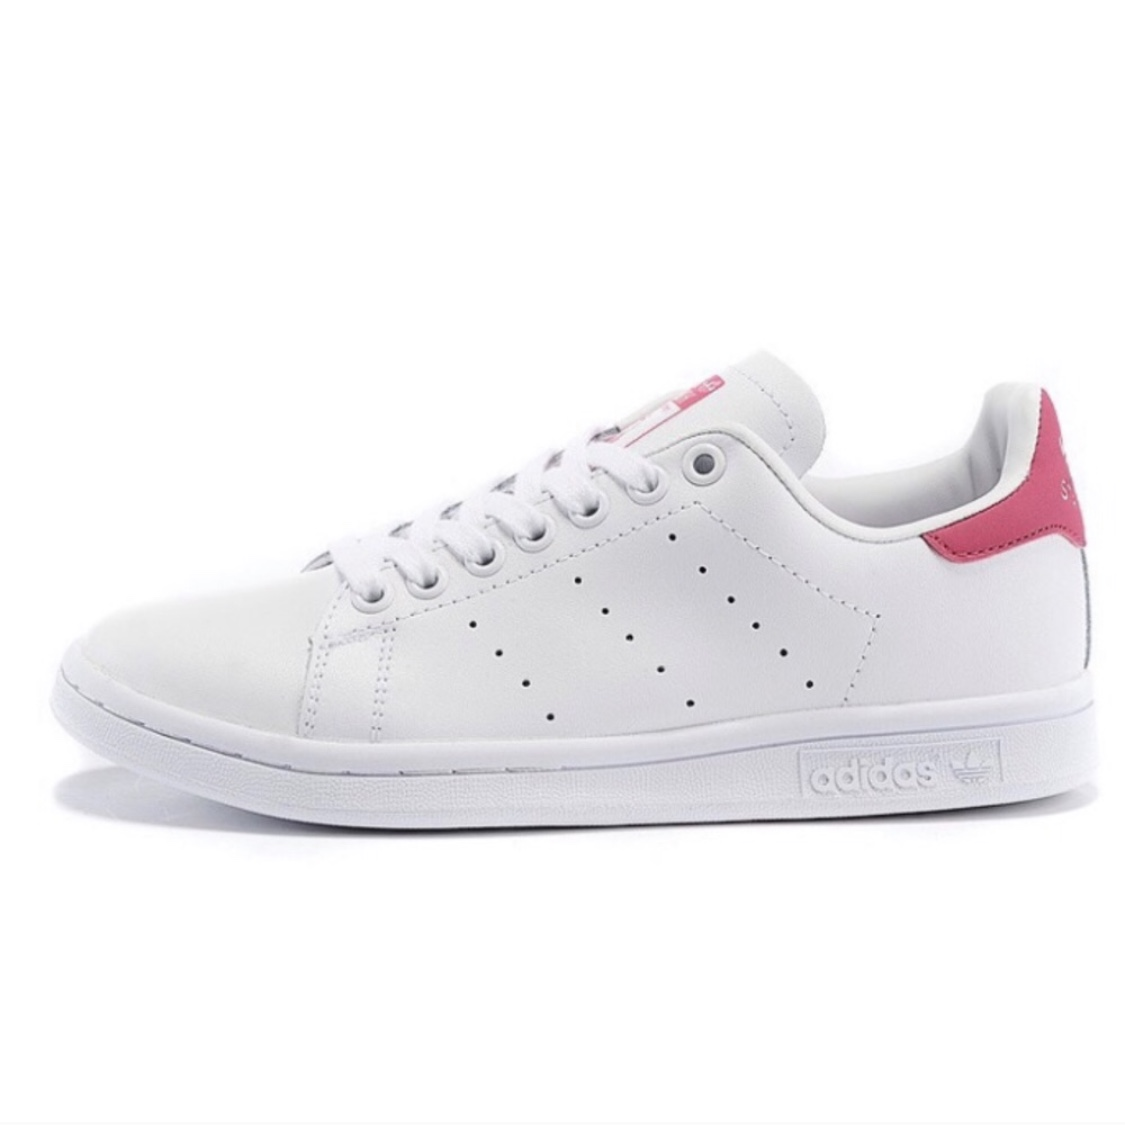 pretty nice e613a cab74 Adidas Pink Stan Smith Sneakers Size Men's 6 Fits... - Depop